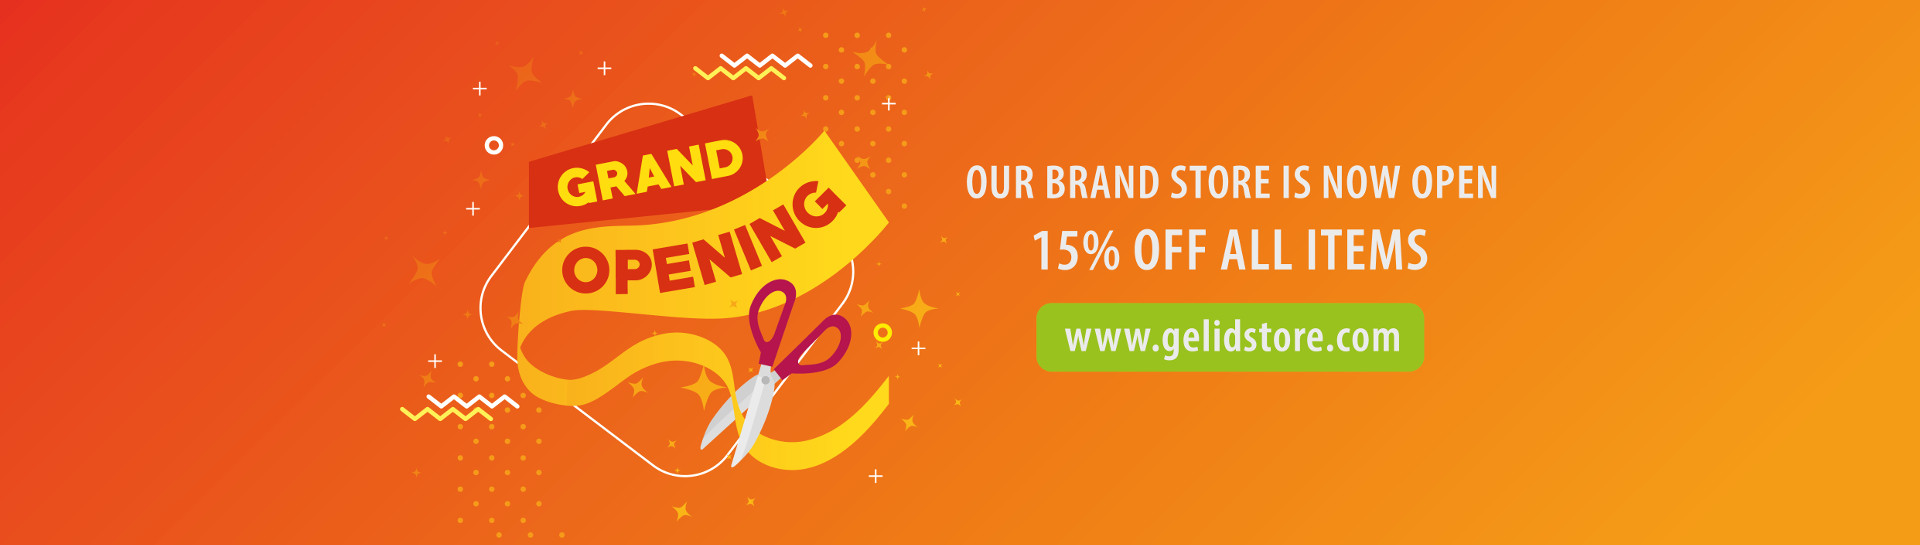 GELID Store Grand Opening